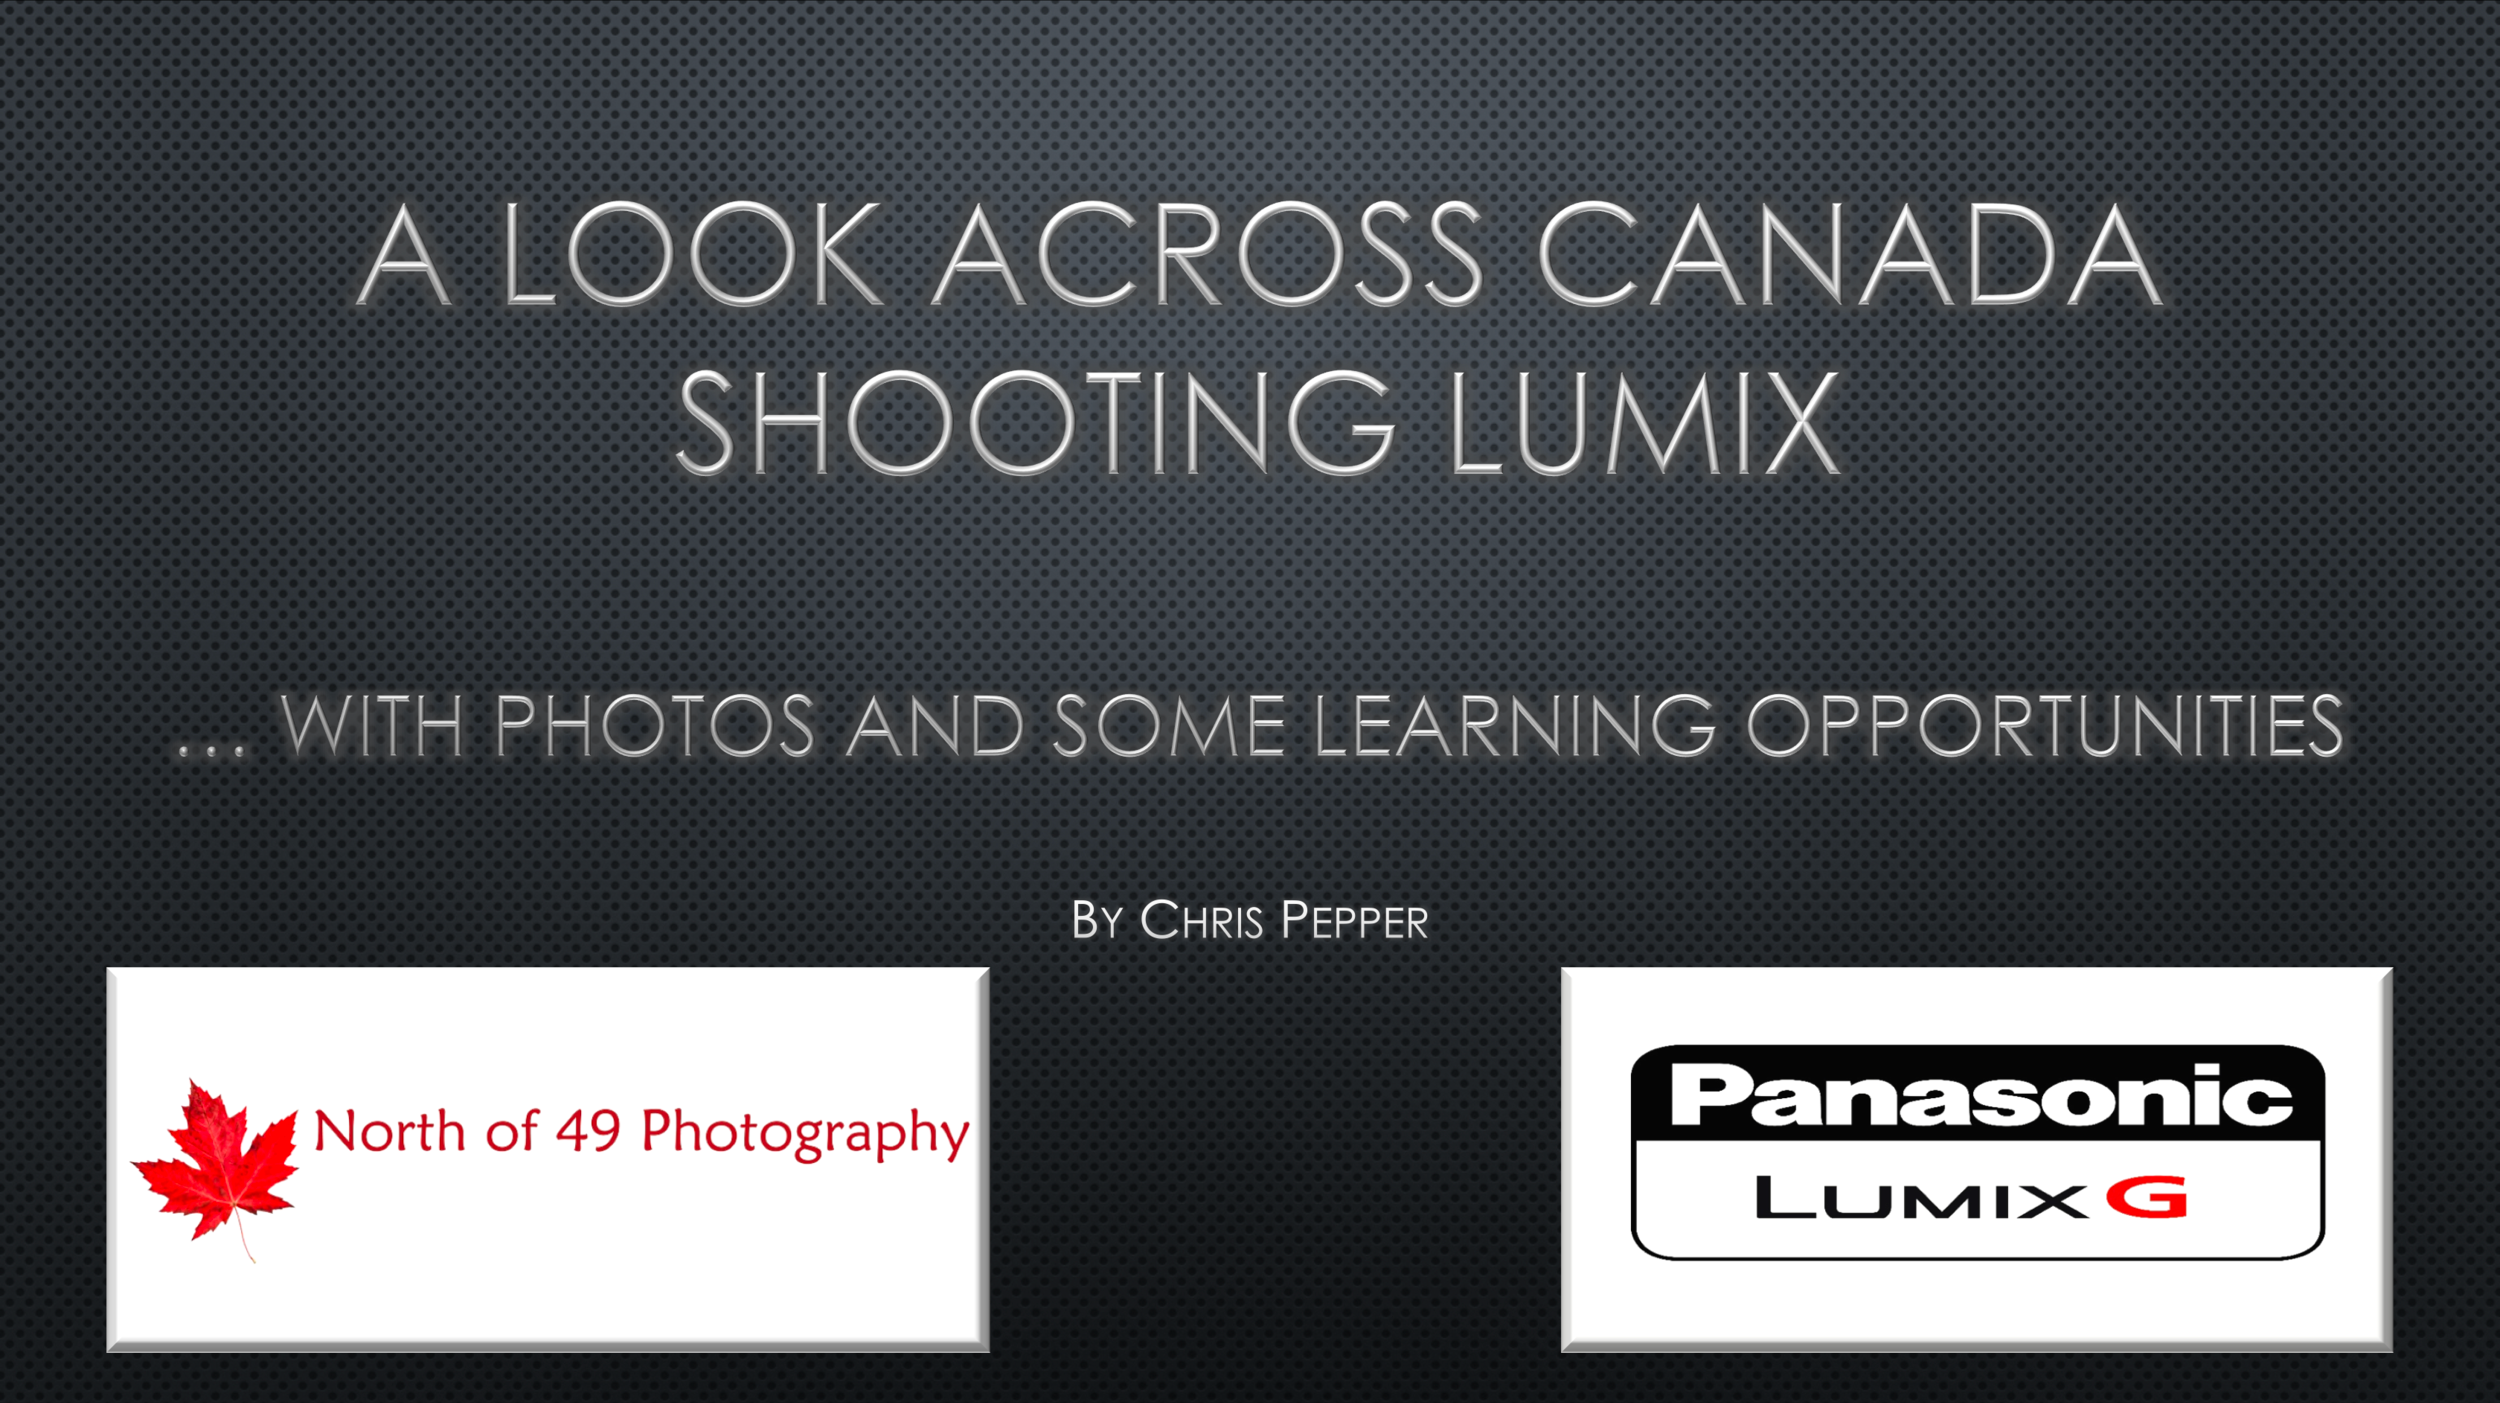 A look across Canada Shooting Lumix with Chris Pepper